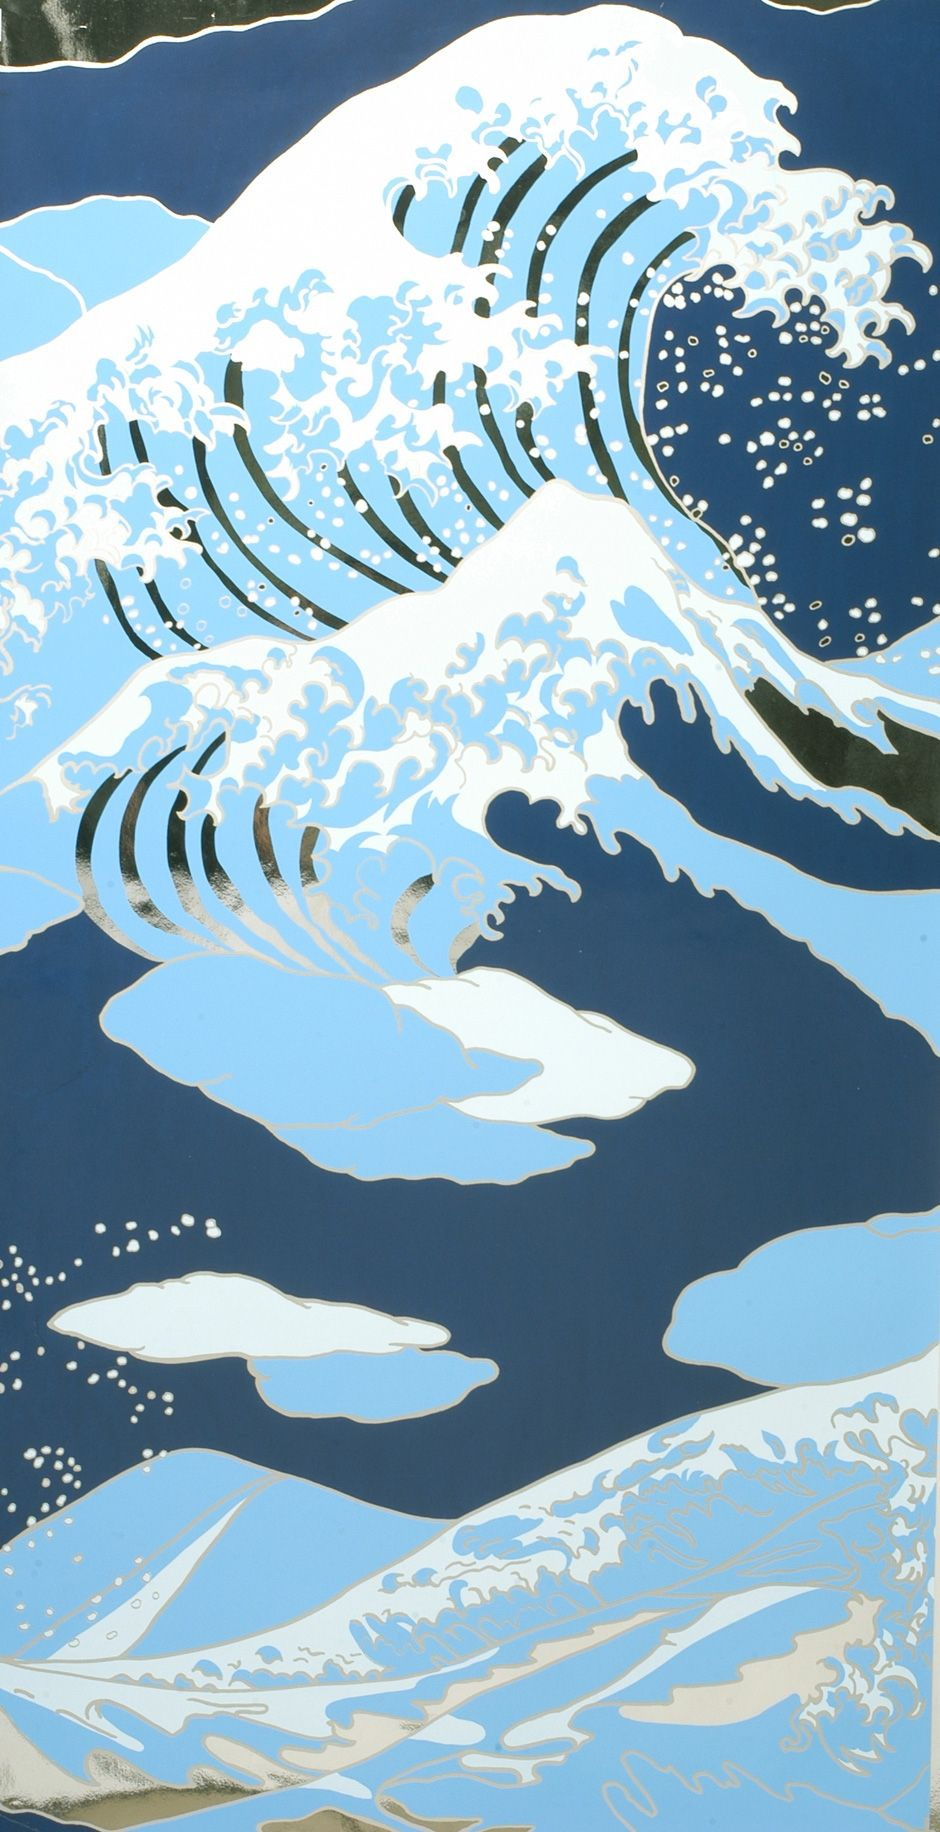 Flavor Paper Onda The Great Wave off Kanagawa Wallpaper